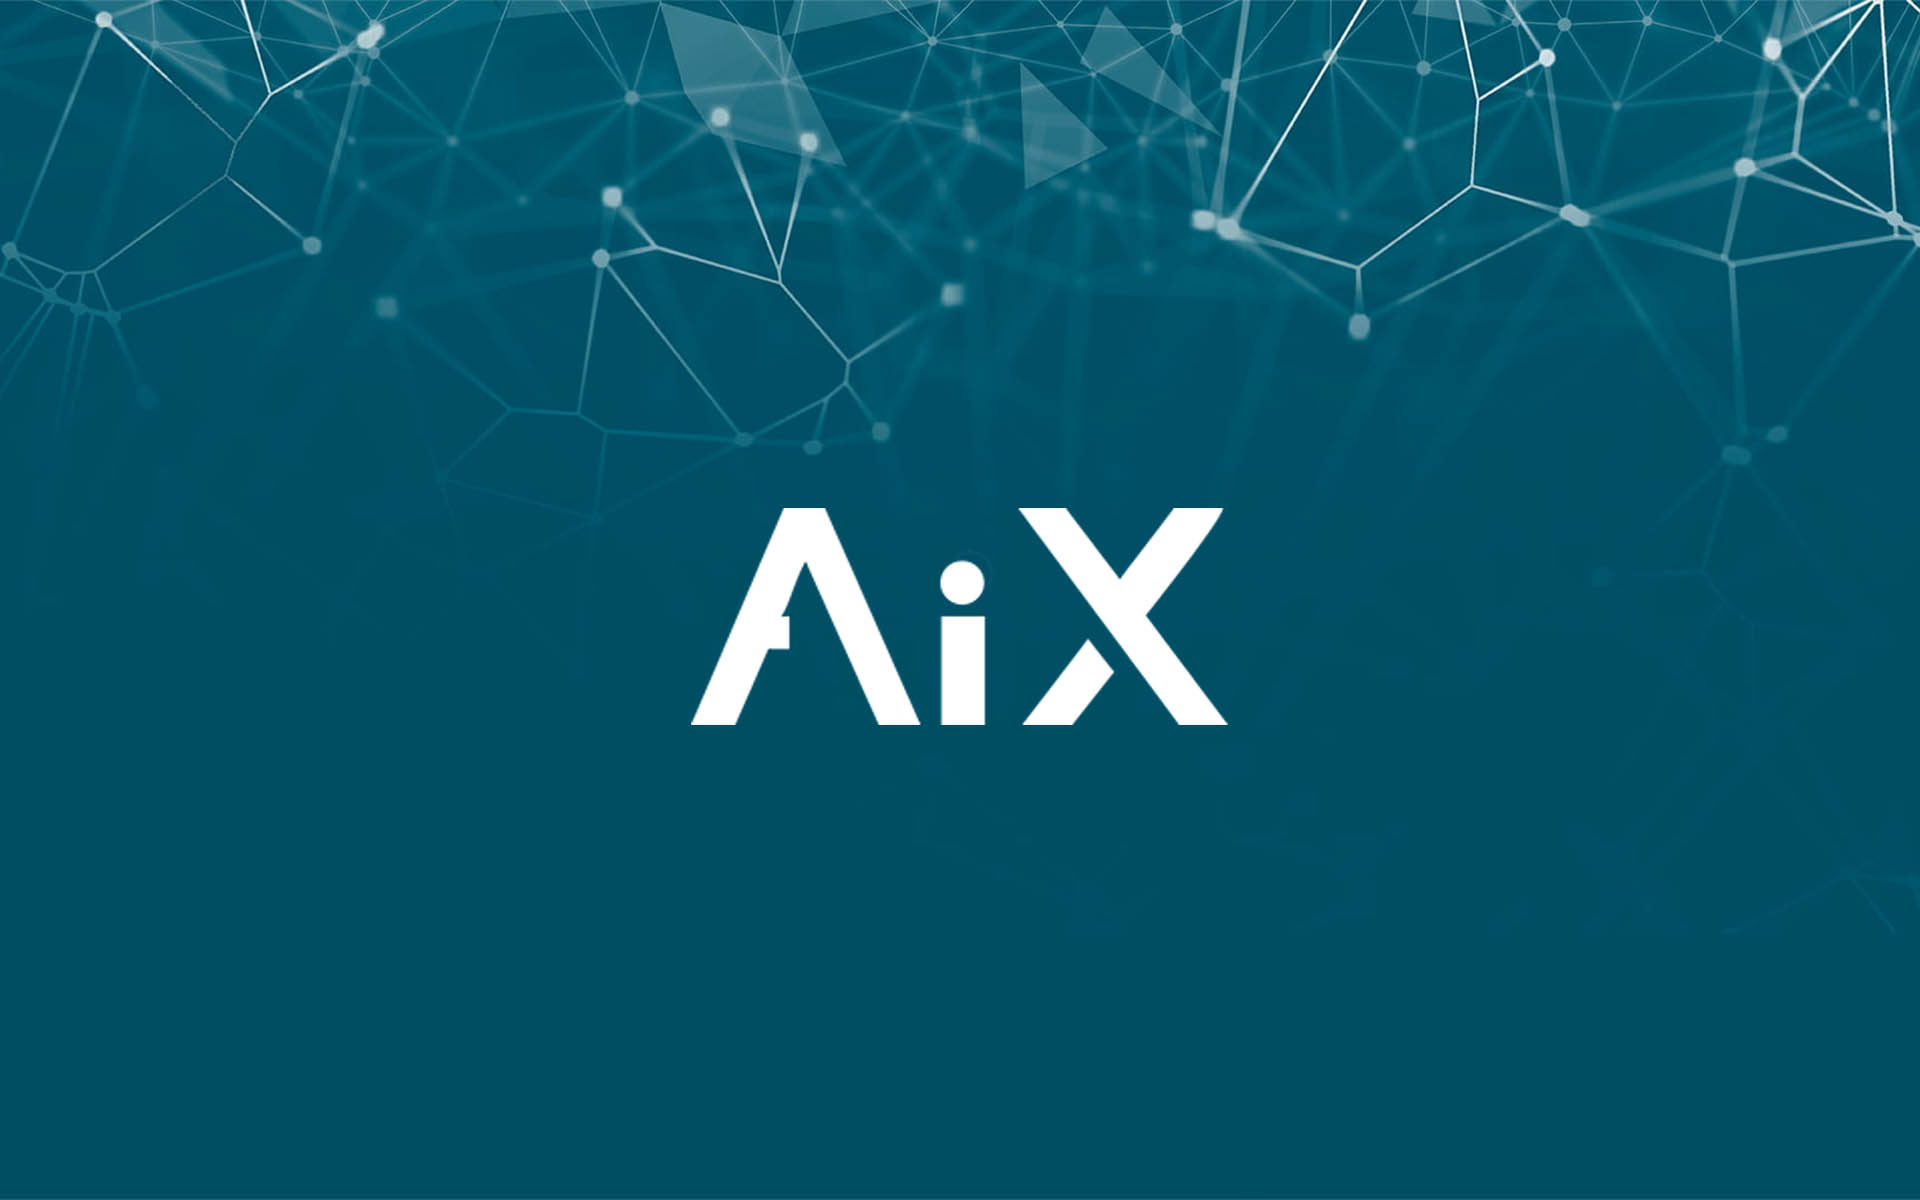 AiX Announces the First Artificial Intelligence Broker to Bridge Cryptocurrencies and Traditional Financial Markets